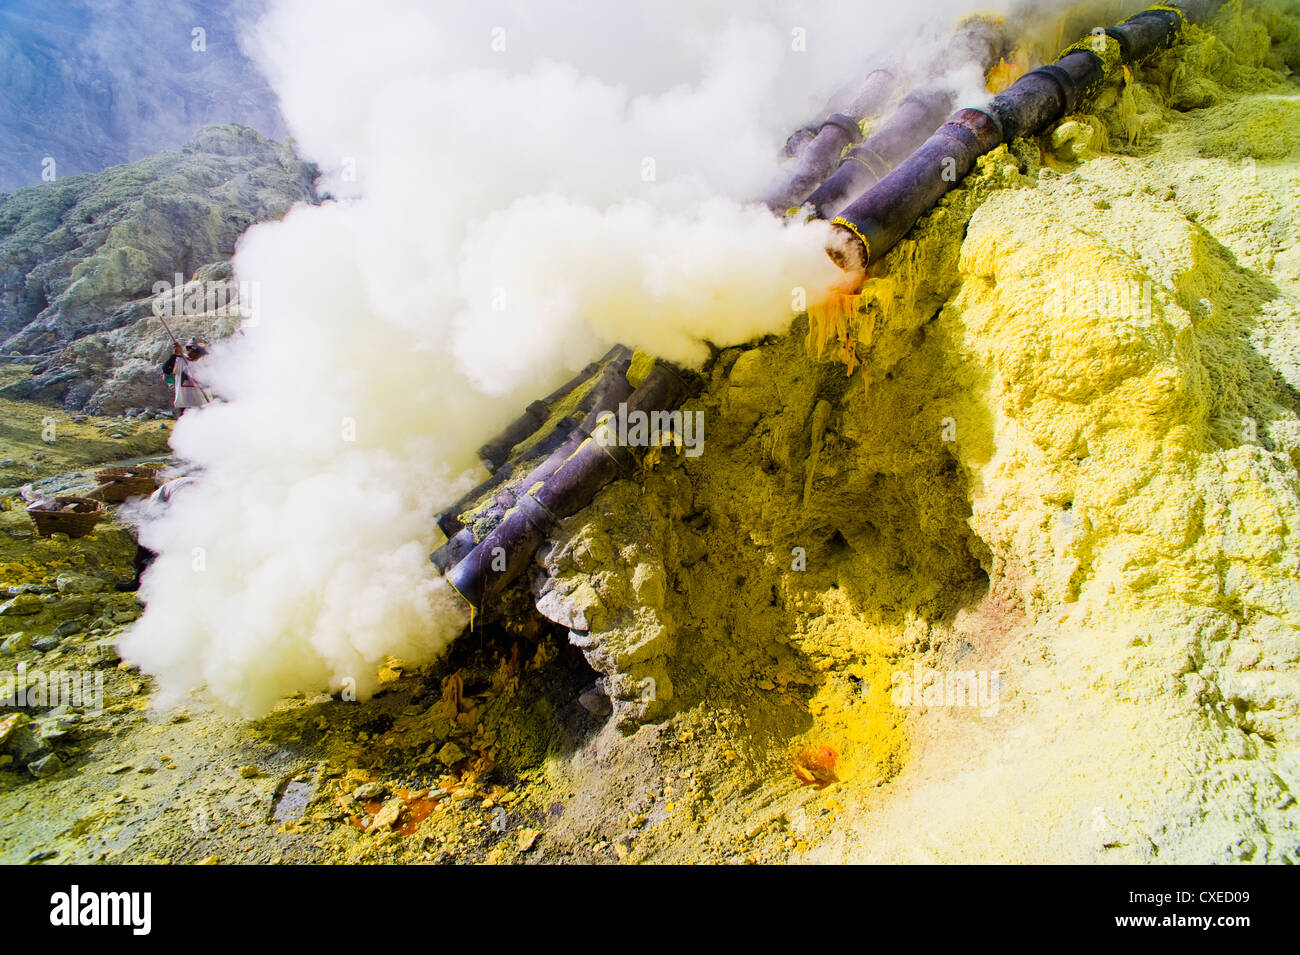 Toxic sulphur fumes escaping from the ceramic pipes at Kawah Ijen, Java, Indonesia, Southeast Asia, Asia - Stock Image